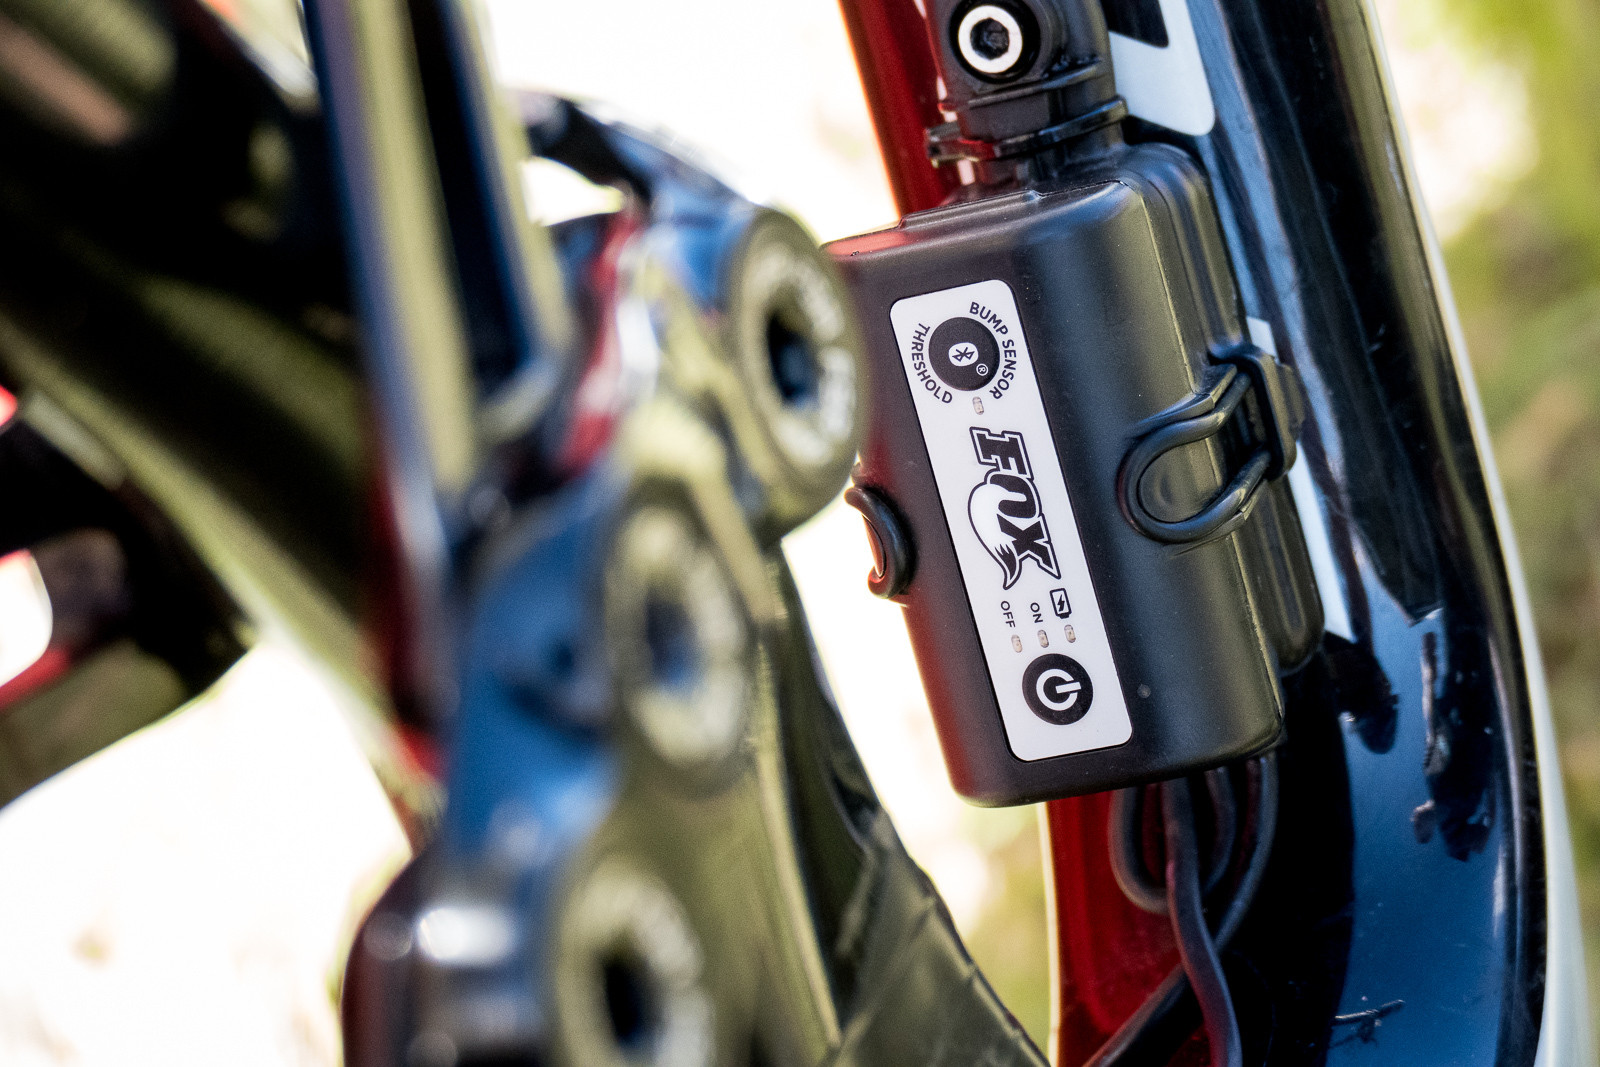 Prototype Electronic FOX 'Live Valve' Suspension System - PIT BITS - Enduro World Series, Crested Butte, Colorado - Mountain Biking Pictures - Vital MTB